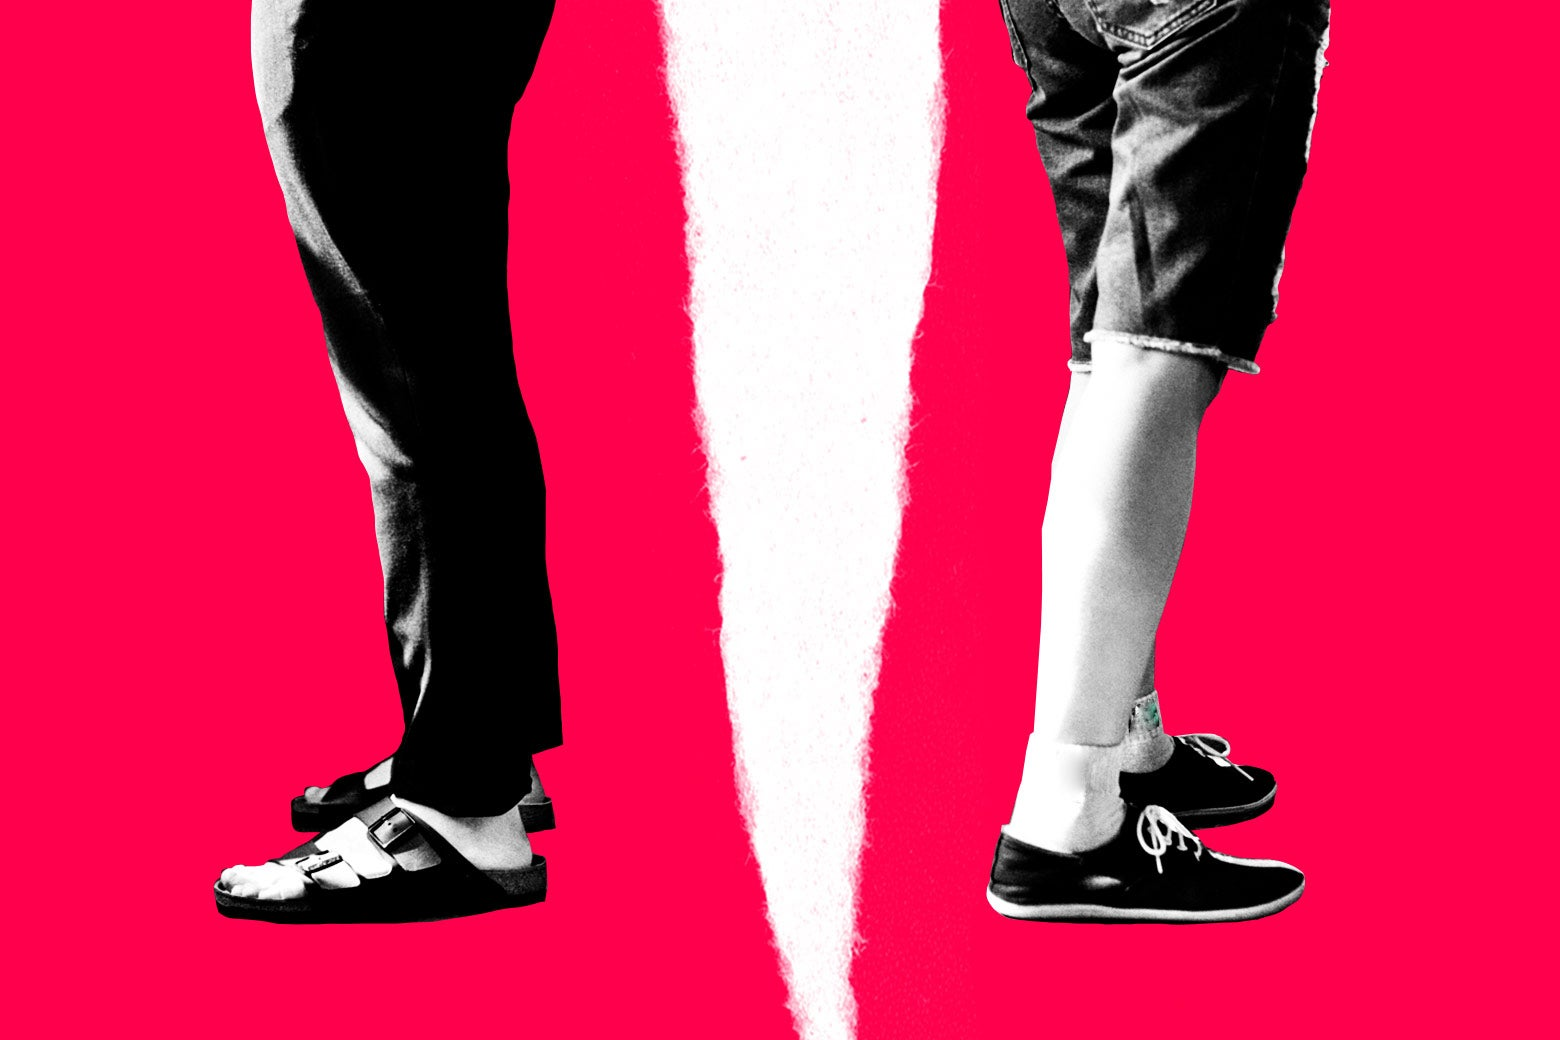 One person wearing pants and sandals and one person wearing shorts and sneakers, pictured from the waist down with a rift in between them.